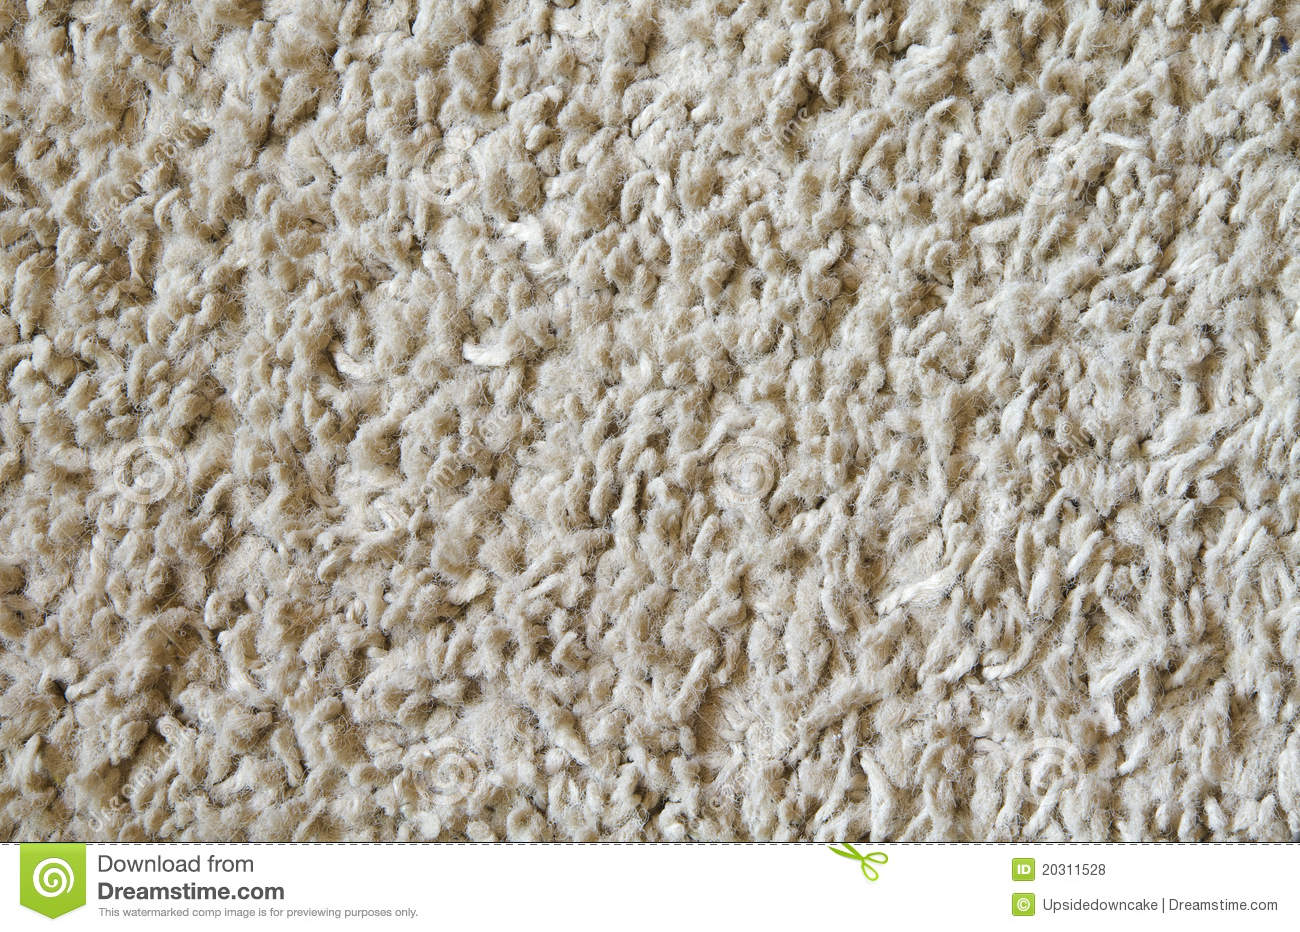 how to fix bumpy carpet